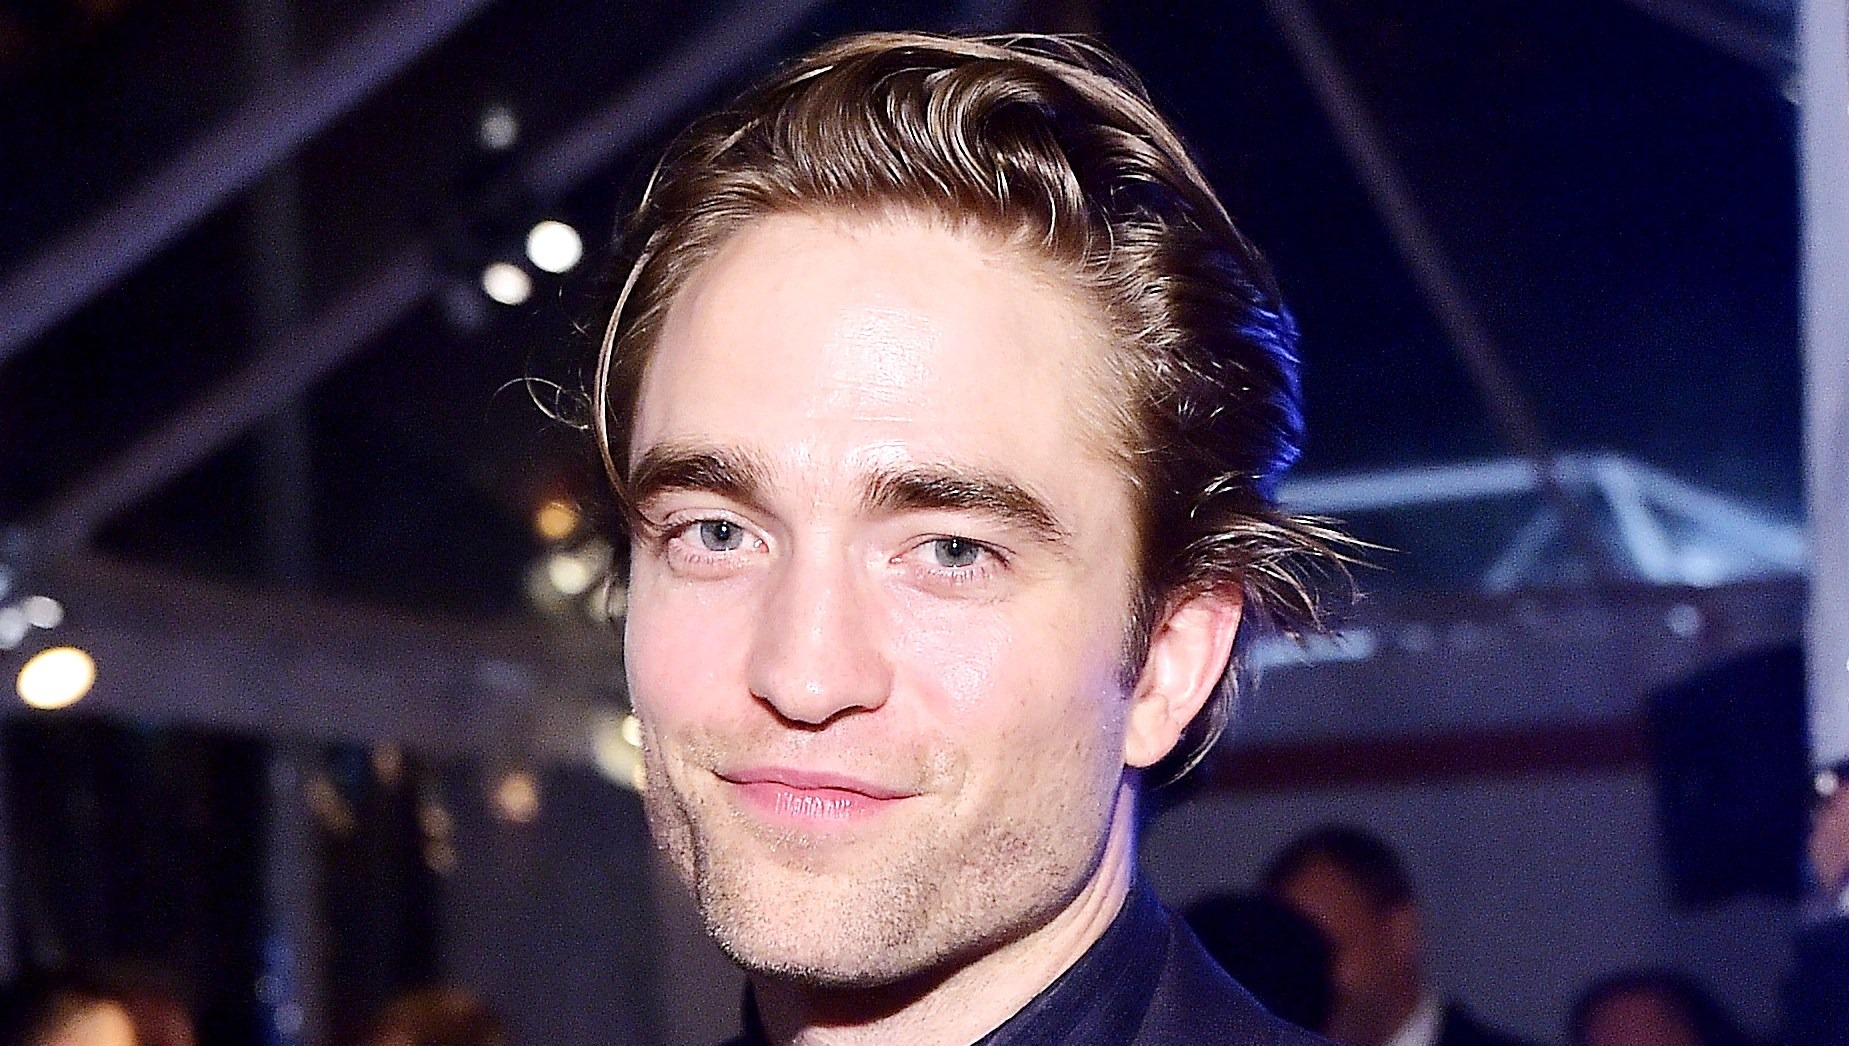 Robert Pattinson Celebrates Birthday Twilight Costars